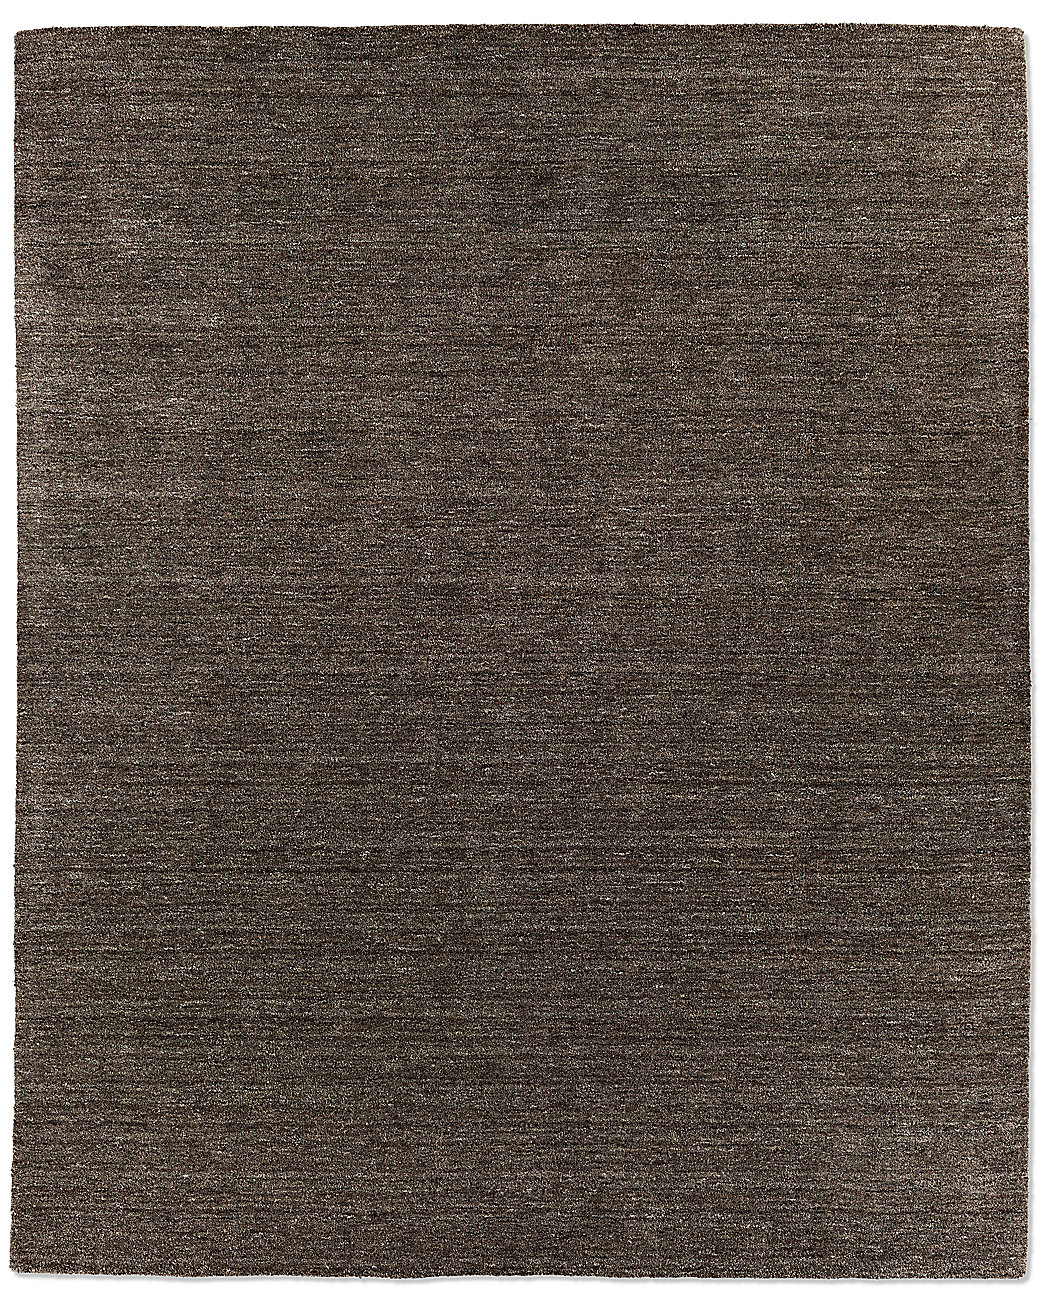 Striated plush wool rug charcoal for Restoration hardware rugs on sale